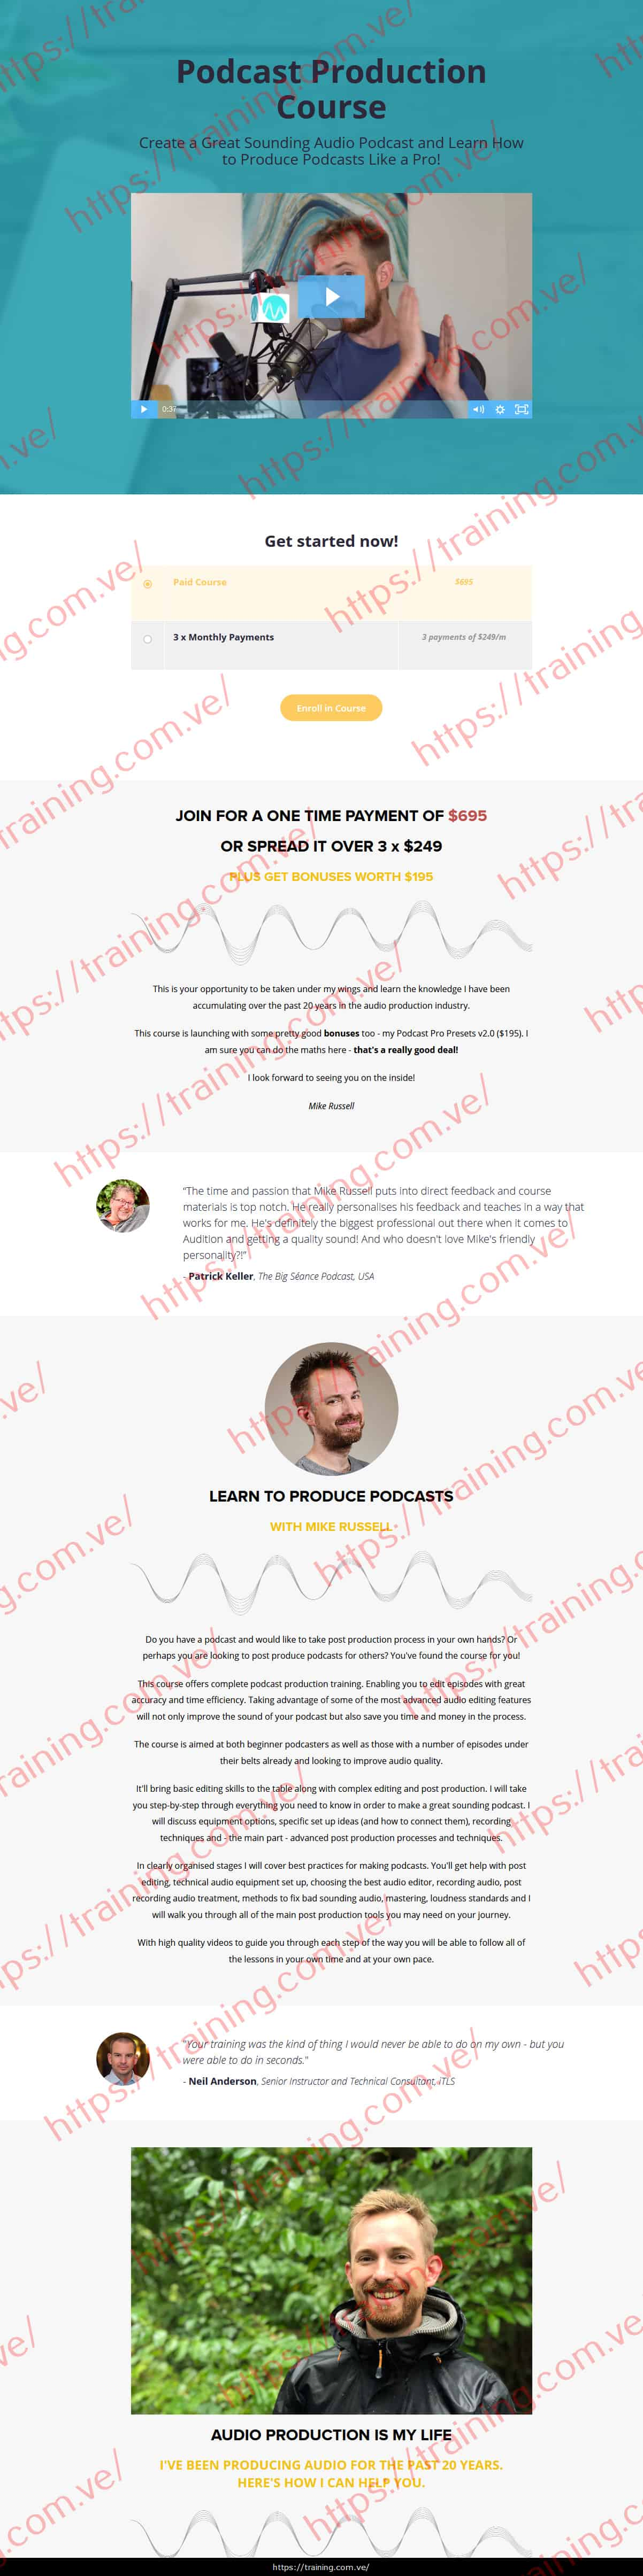 Podcast Production Course by Mike Russell Sales page